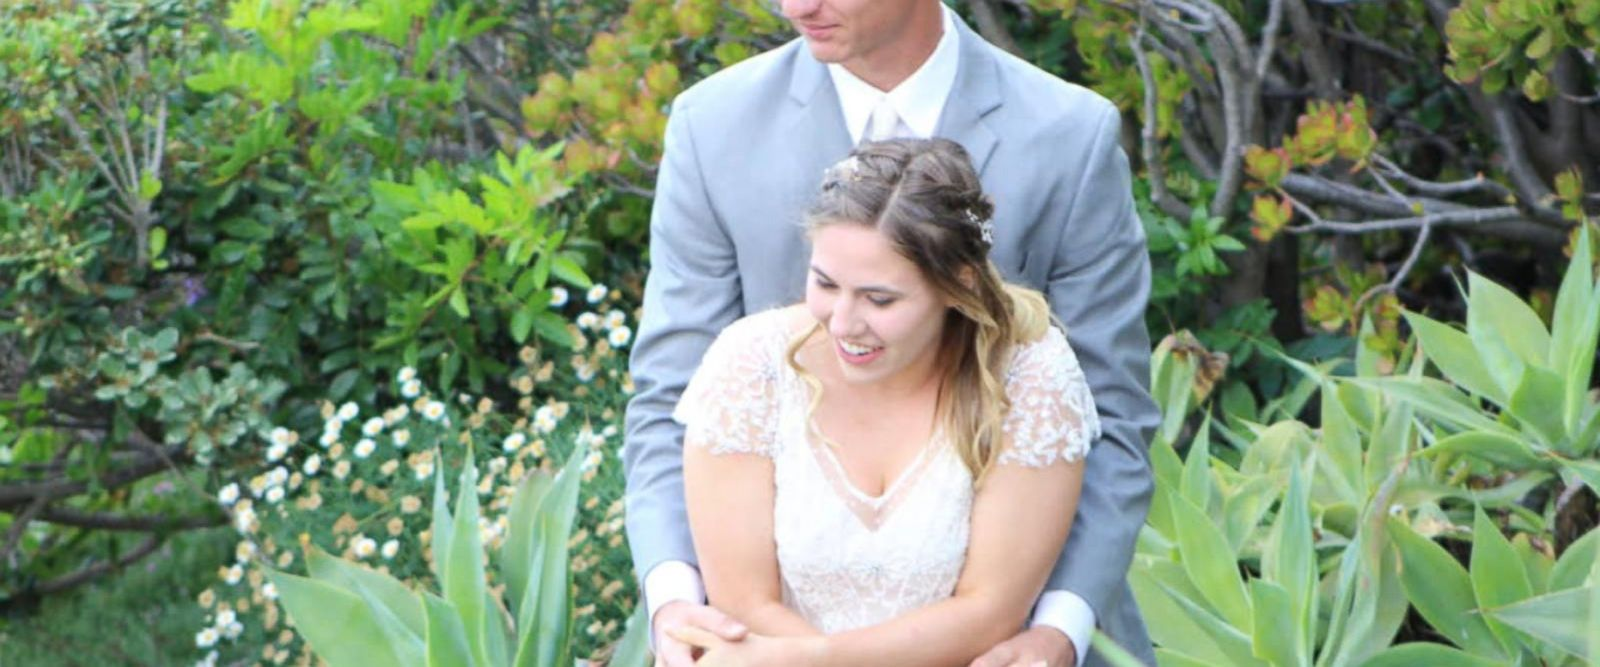 Heather and Kole Powell were married in Laguna Beach, California, and high tide washed away their wedding camera.